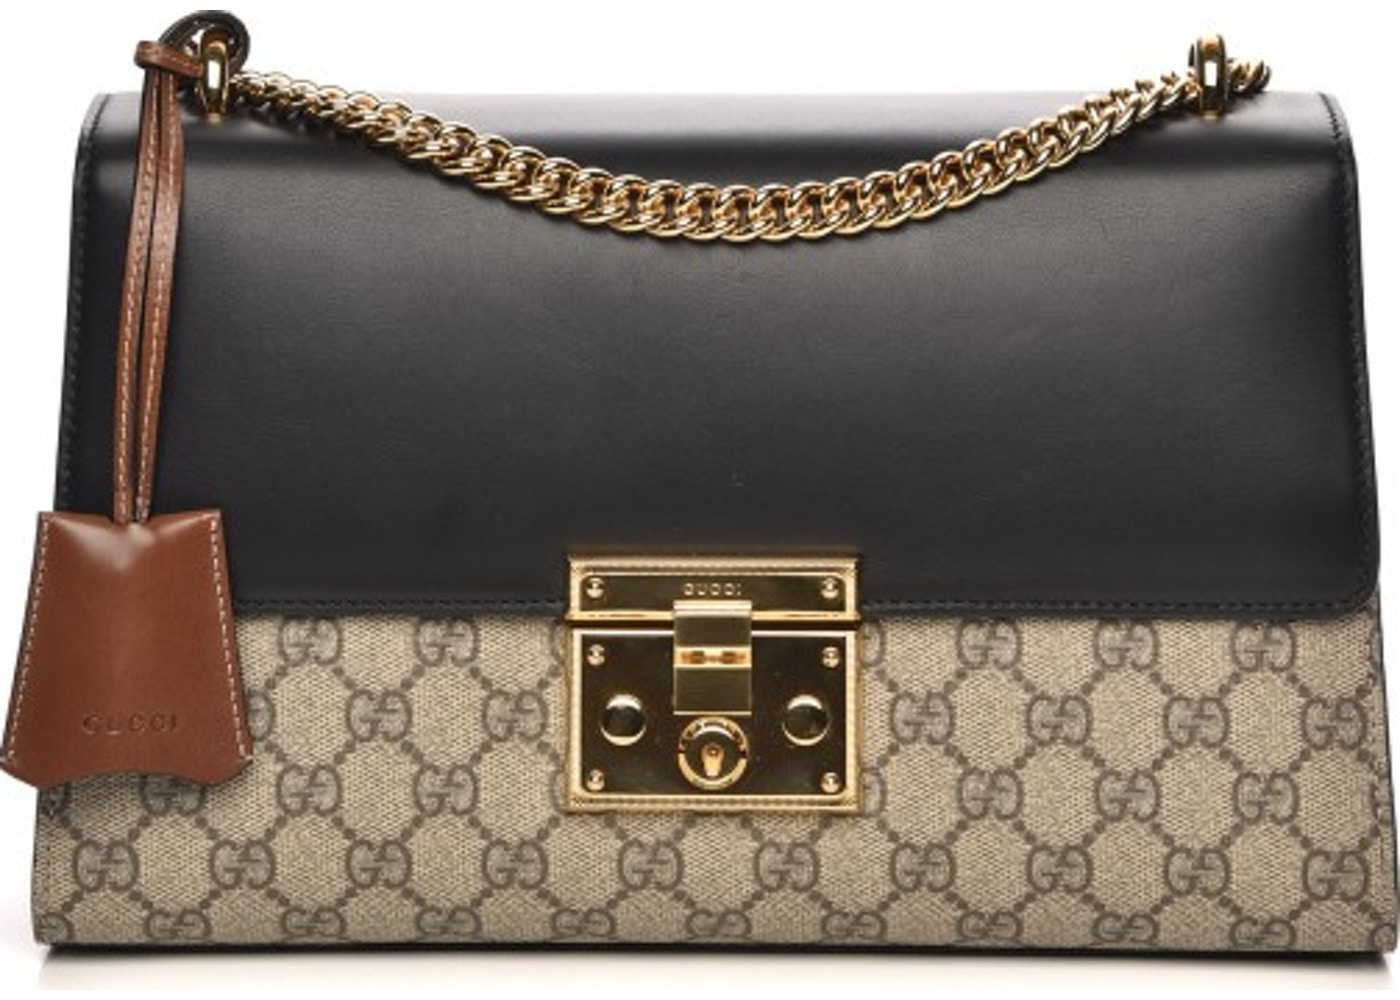 56d3ad3afe5b5f Gucci Padlock Shoulder Monogram GG Supreme Medium Beige/Black. Monogram GG  Supreme Medium Beige/Black